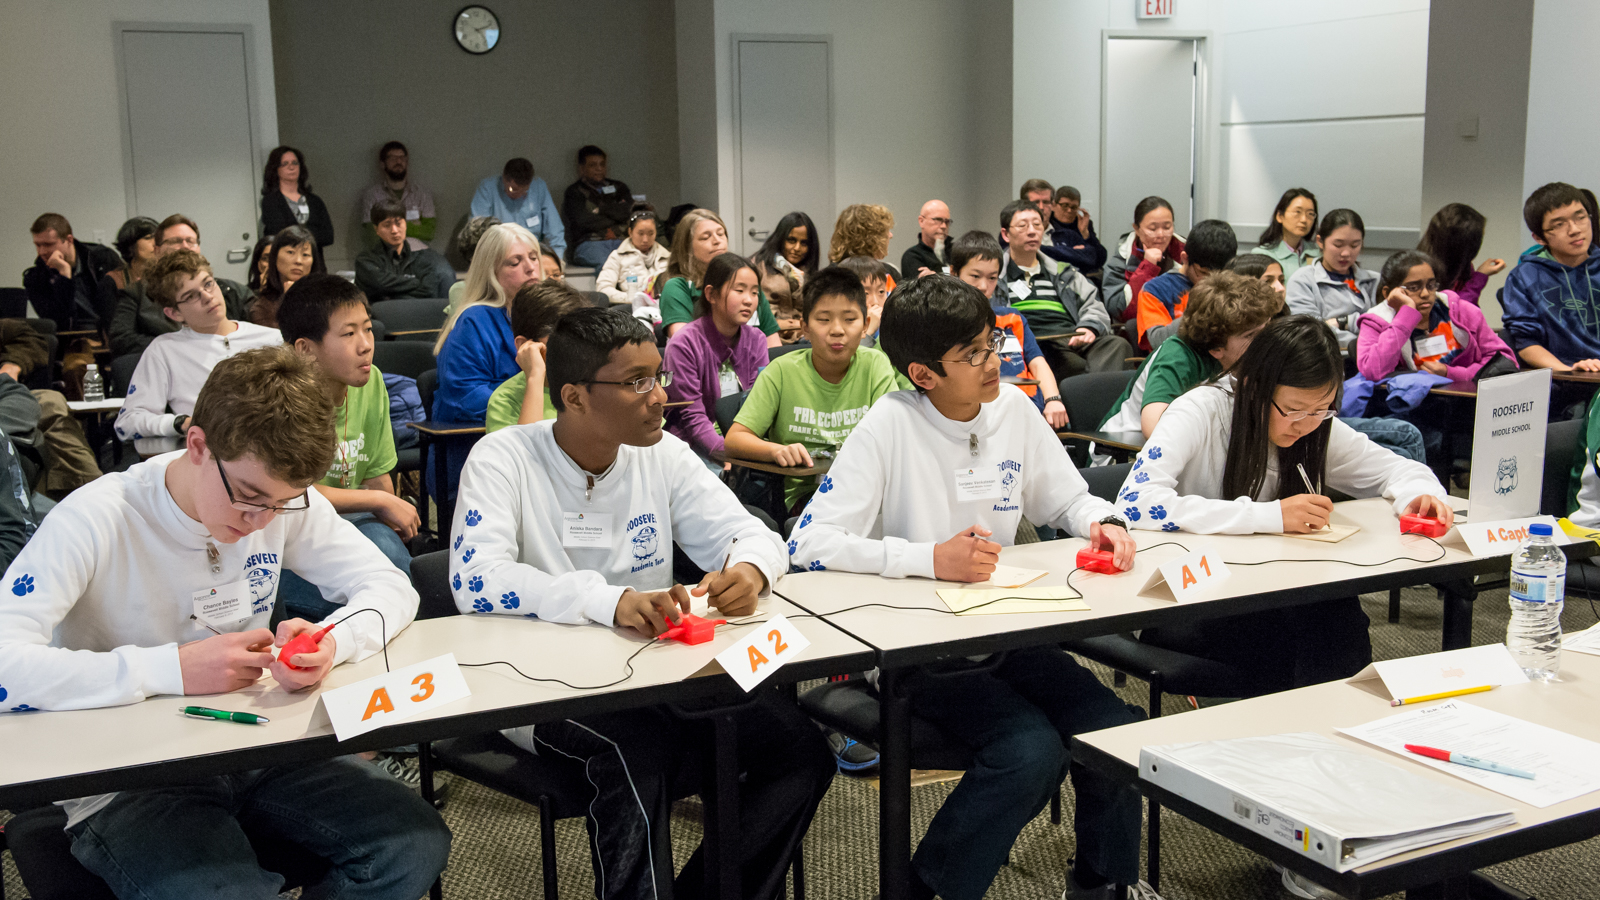 Roosevelt Middle School of River Forest, Ill., competed against 14 other teams in one of the nation's regional competitions of the 23rd Annual U.S. Department of Energy National Science Bowl. Photo courtesy Argonne National Laboratory.